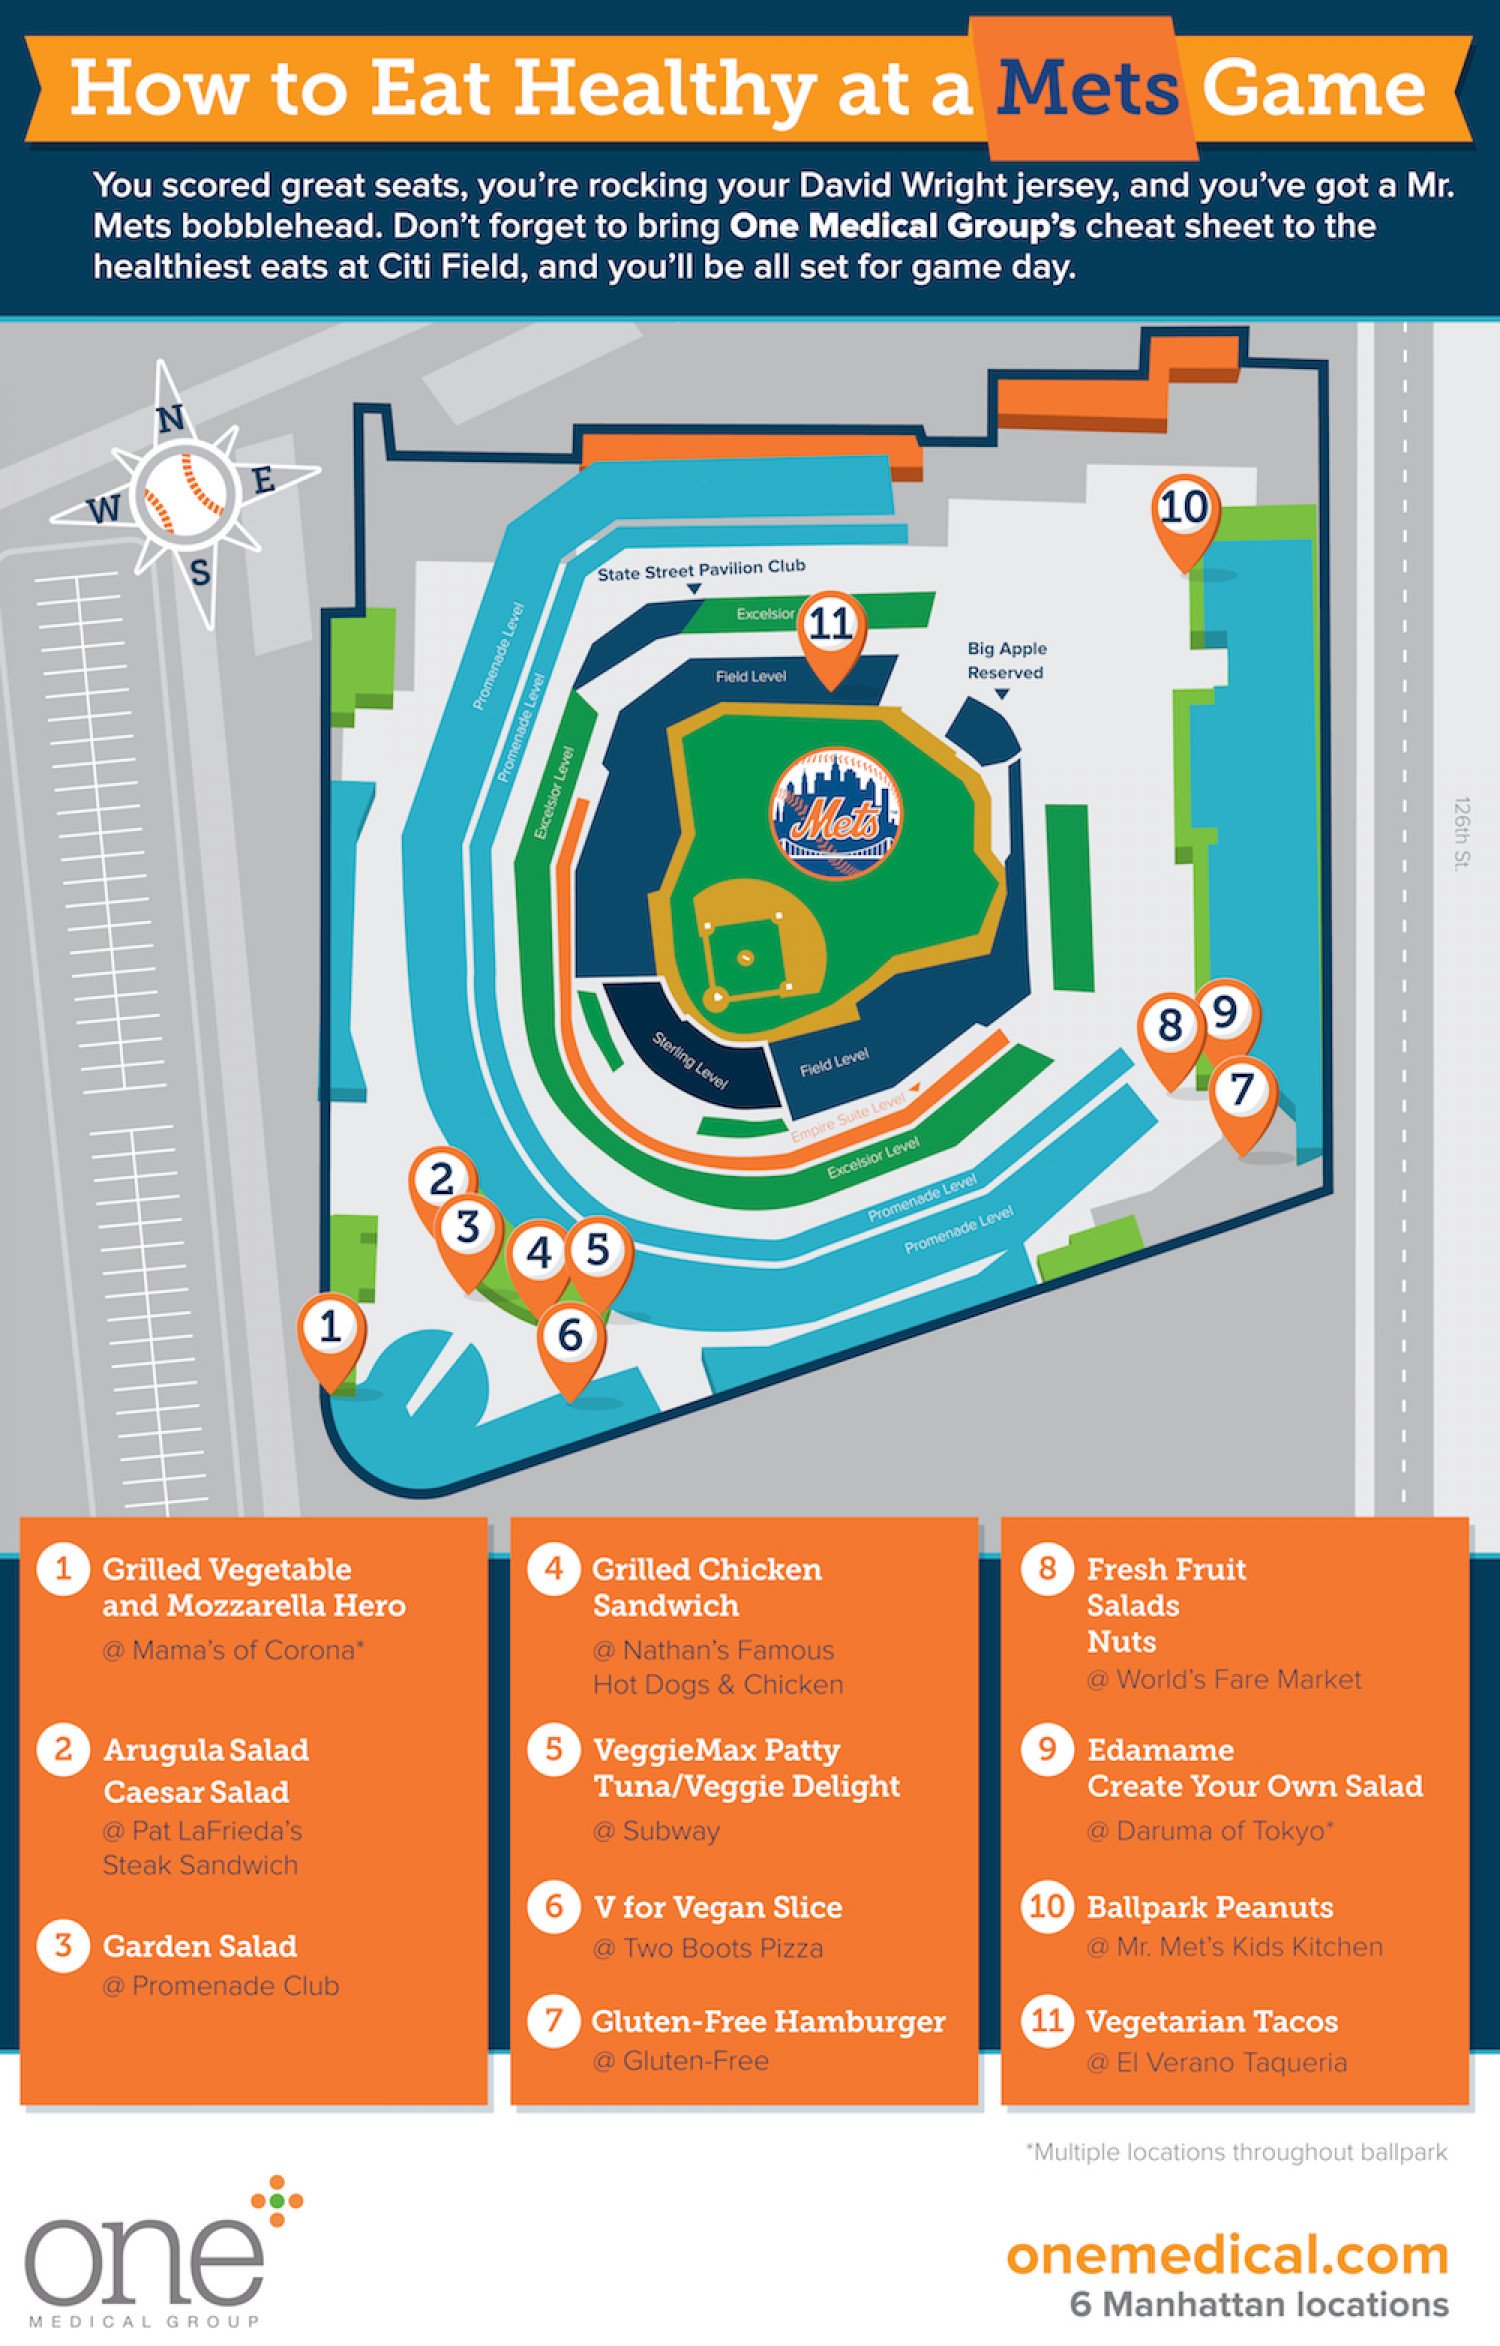 How to Eat Healthy at a Mets Game Infographic